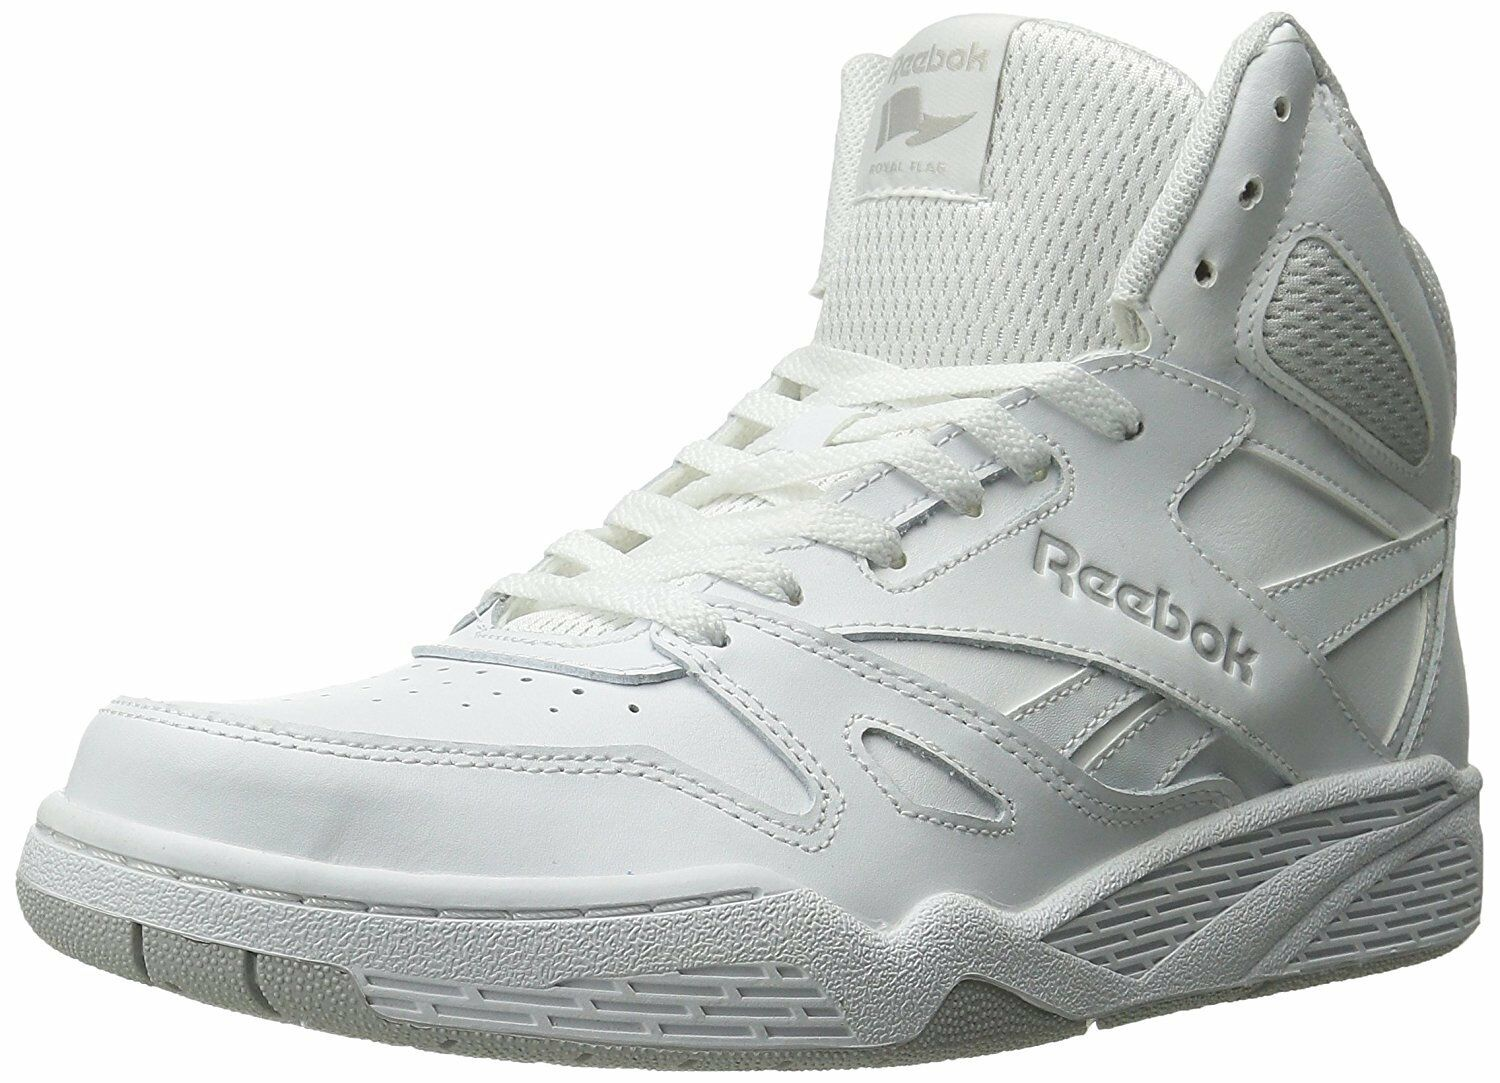 Reebok Uomo Royal Bb4500 Hi Fashion Sneaker, White/Steel, 13 M